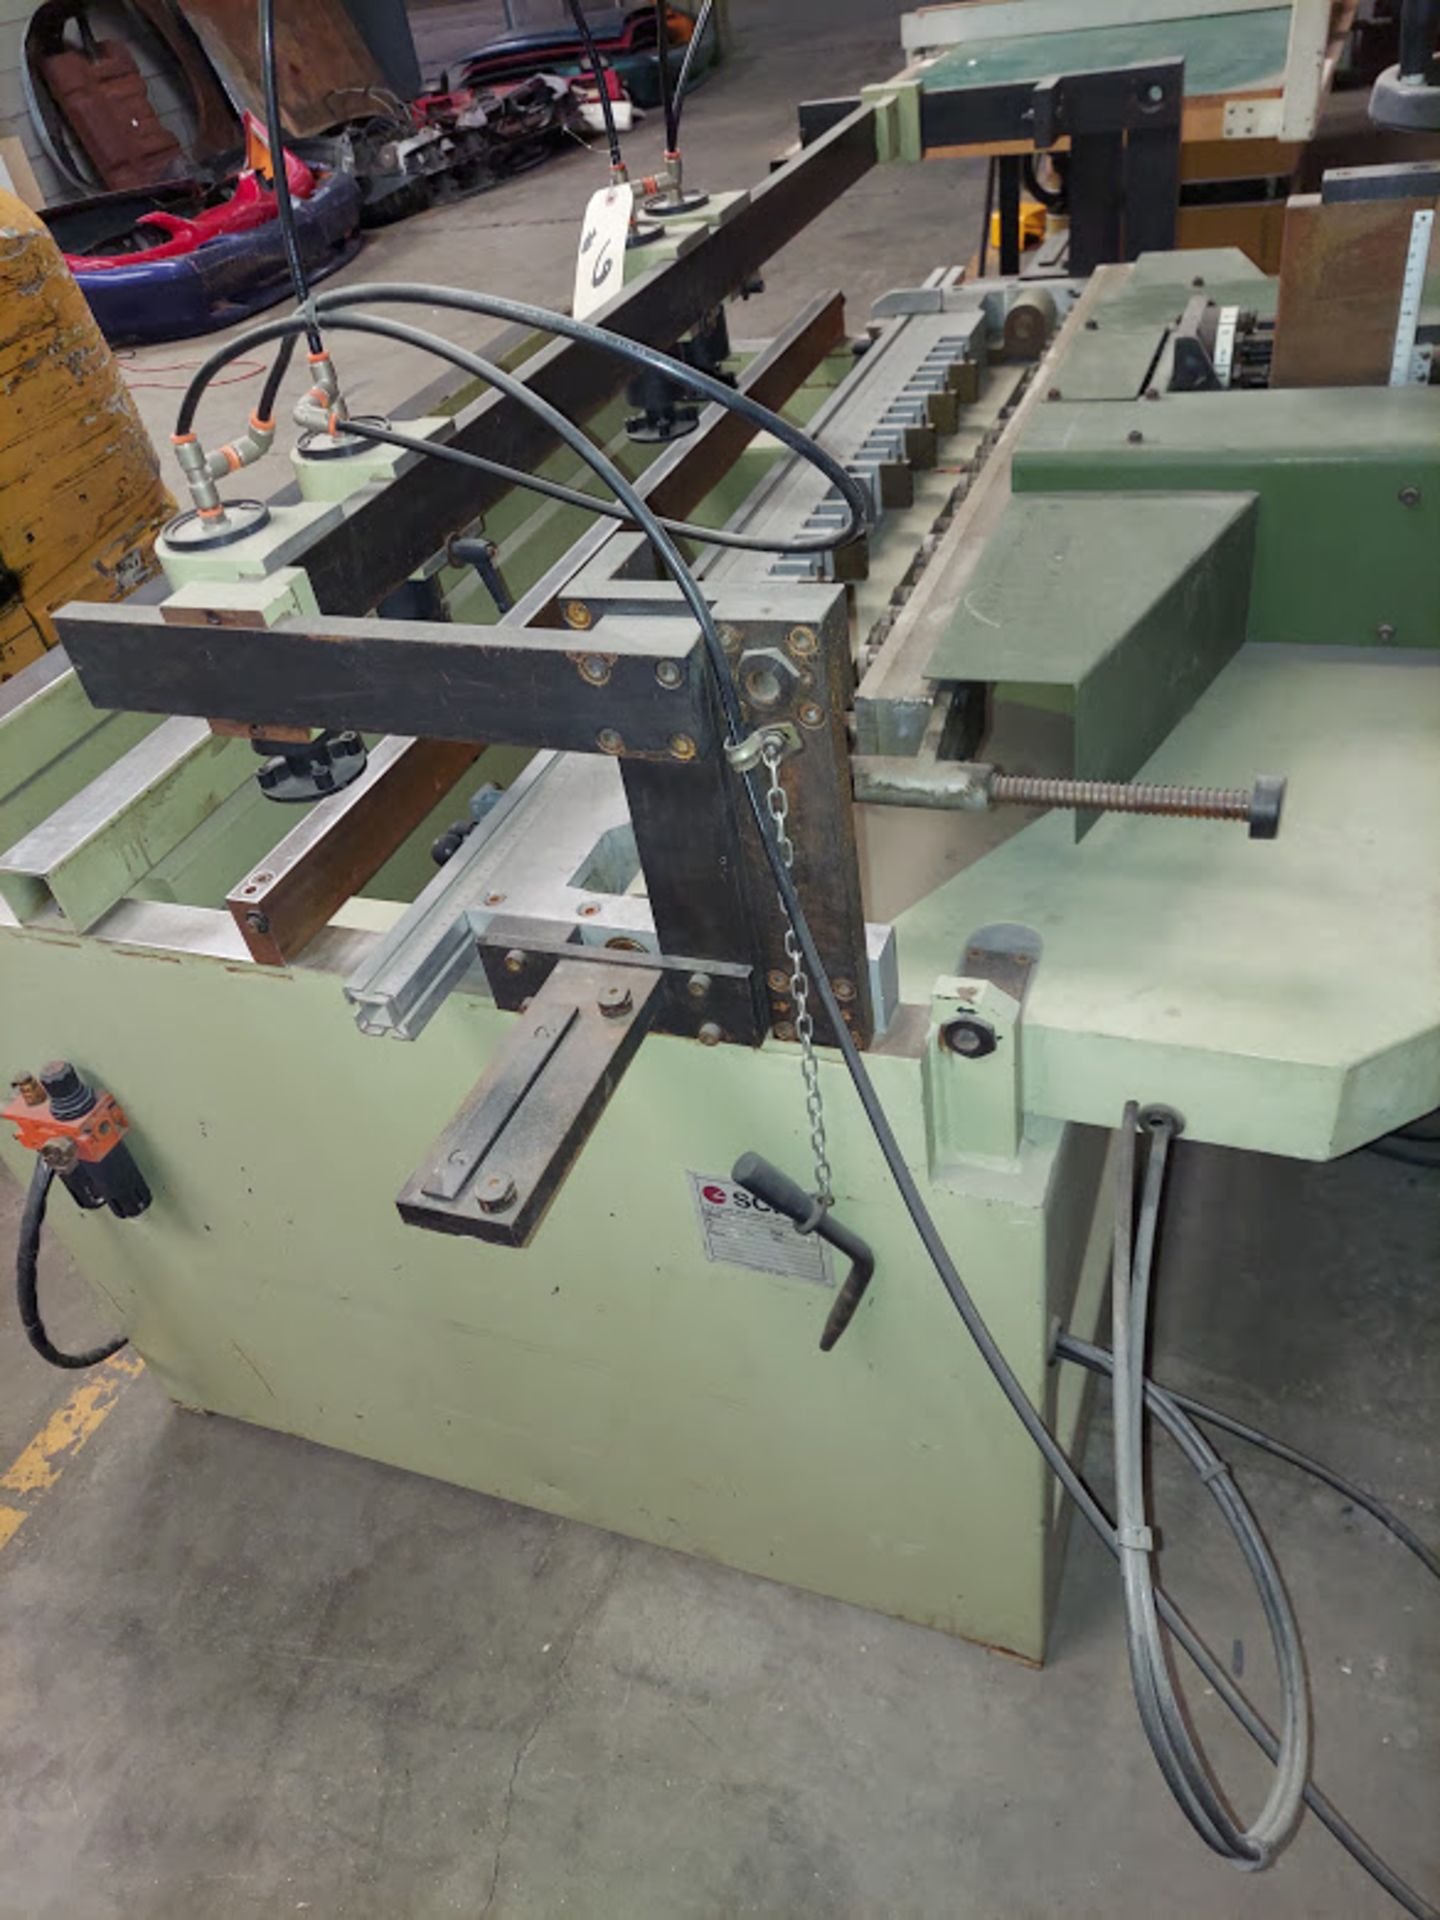 SCMI Construction Line Boring Machine, Model #MB29, 29 Spindles, 230 Volts 3 Phase - Image 4 of 6